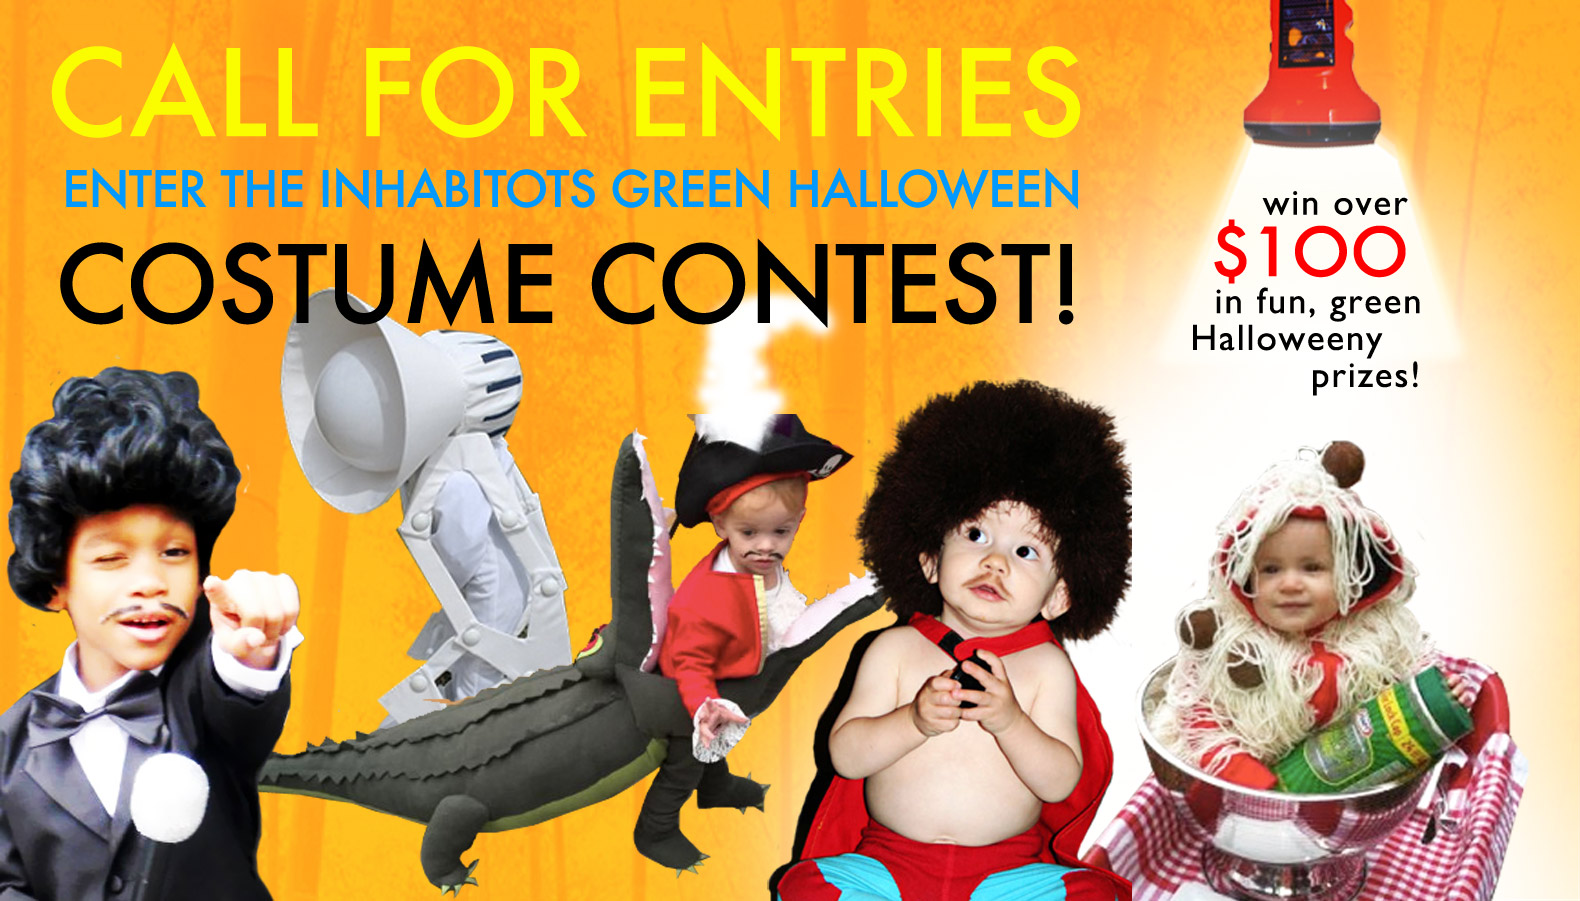 enter the inhabitots green halloween costume contest to win over 100 in prizes